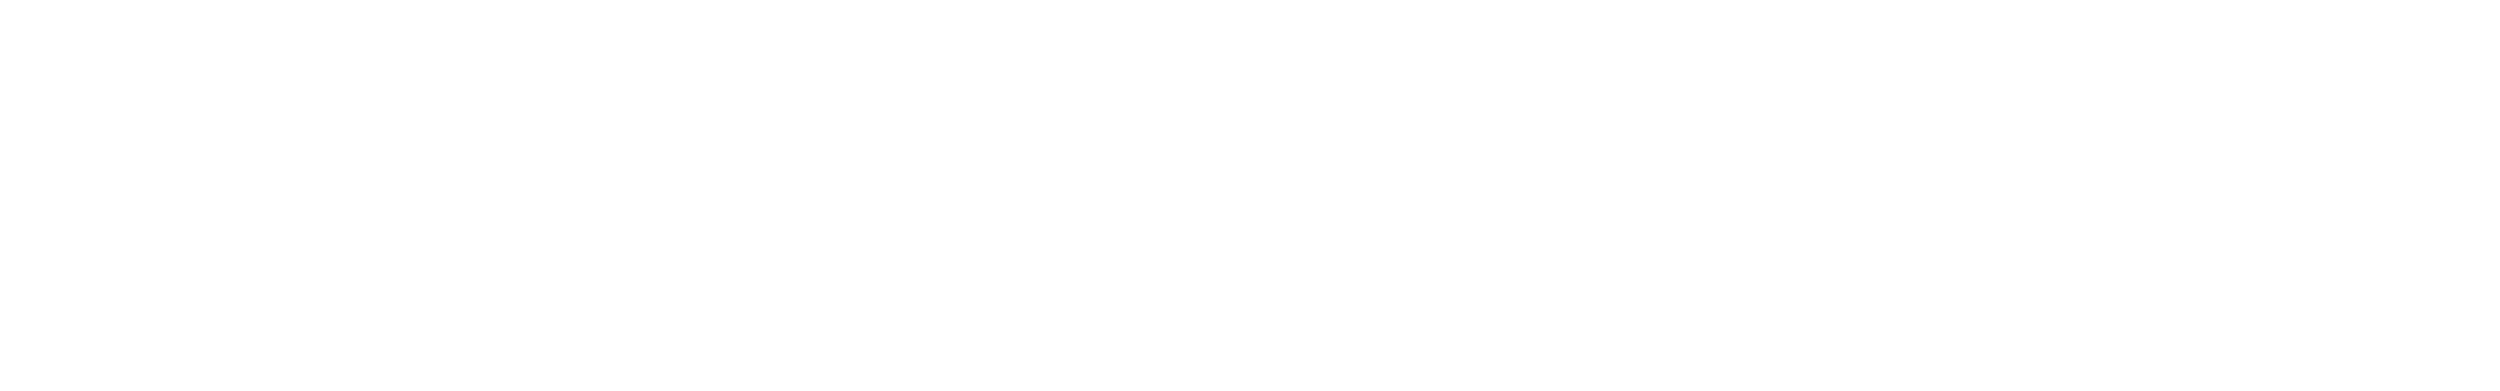 New York FW COVERAGE (1).png